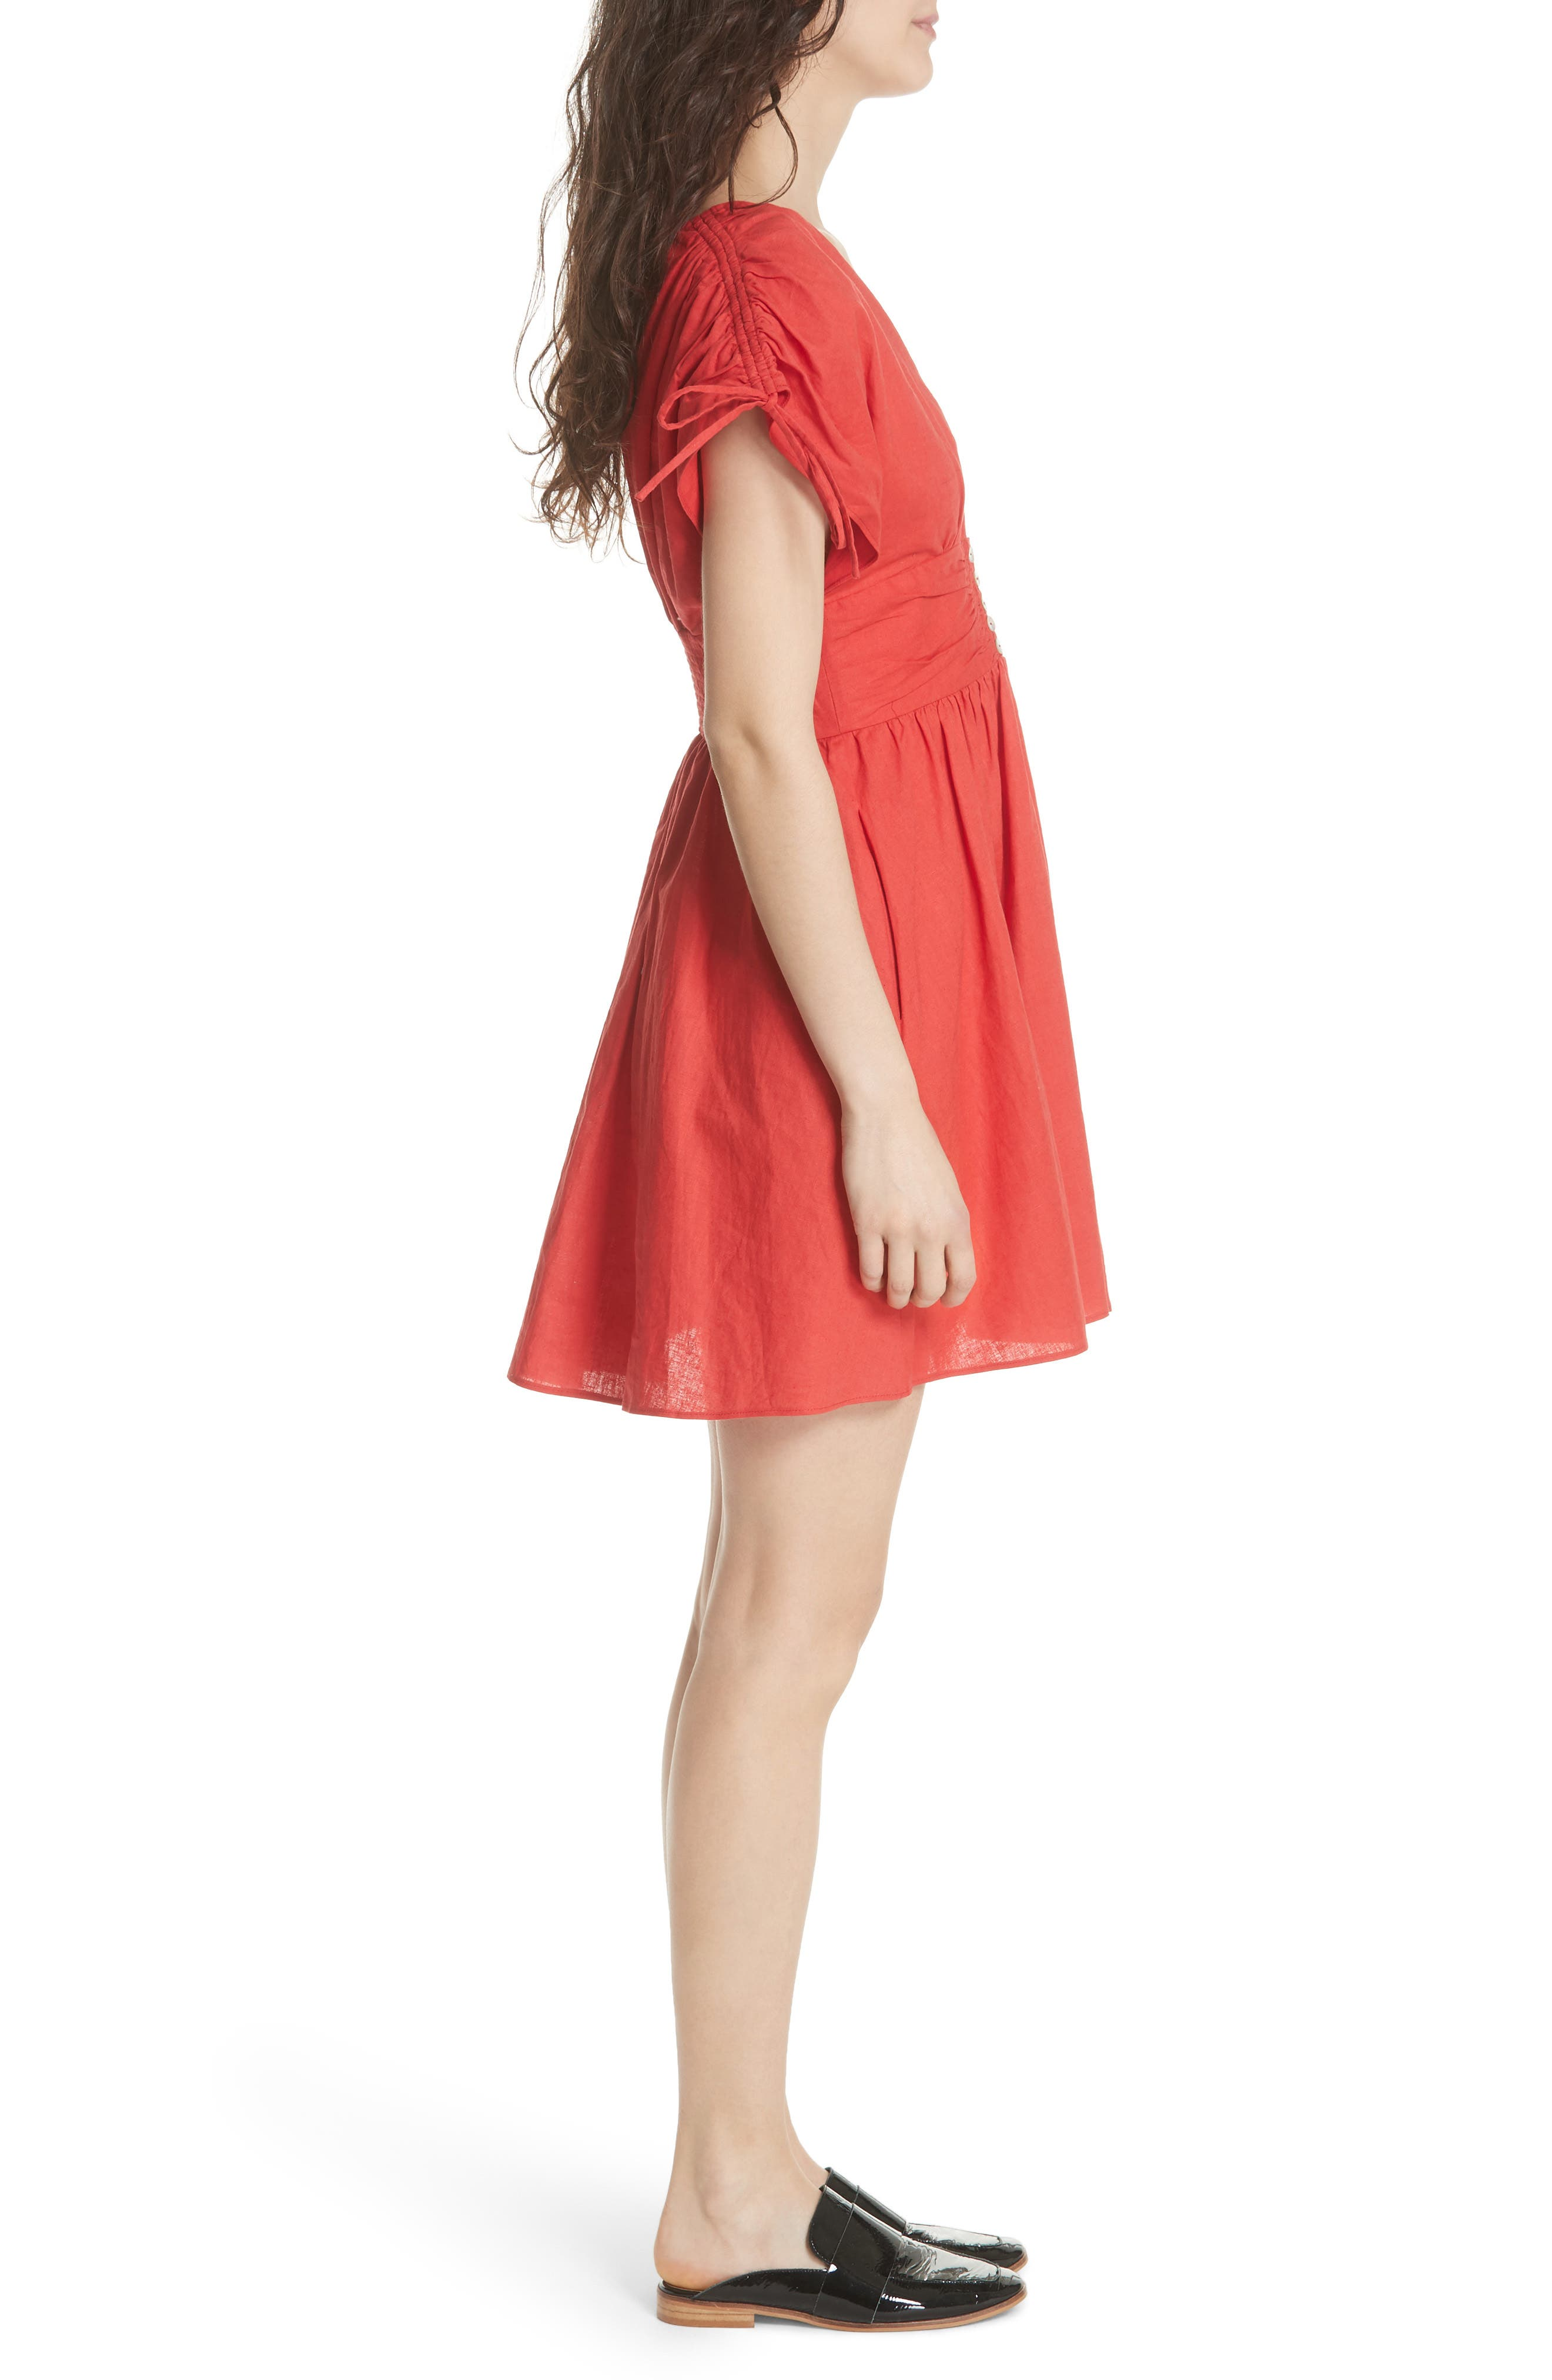 Roll the Dice Minidress,                             Alternate thumbnail 3, color,                             Red